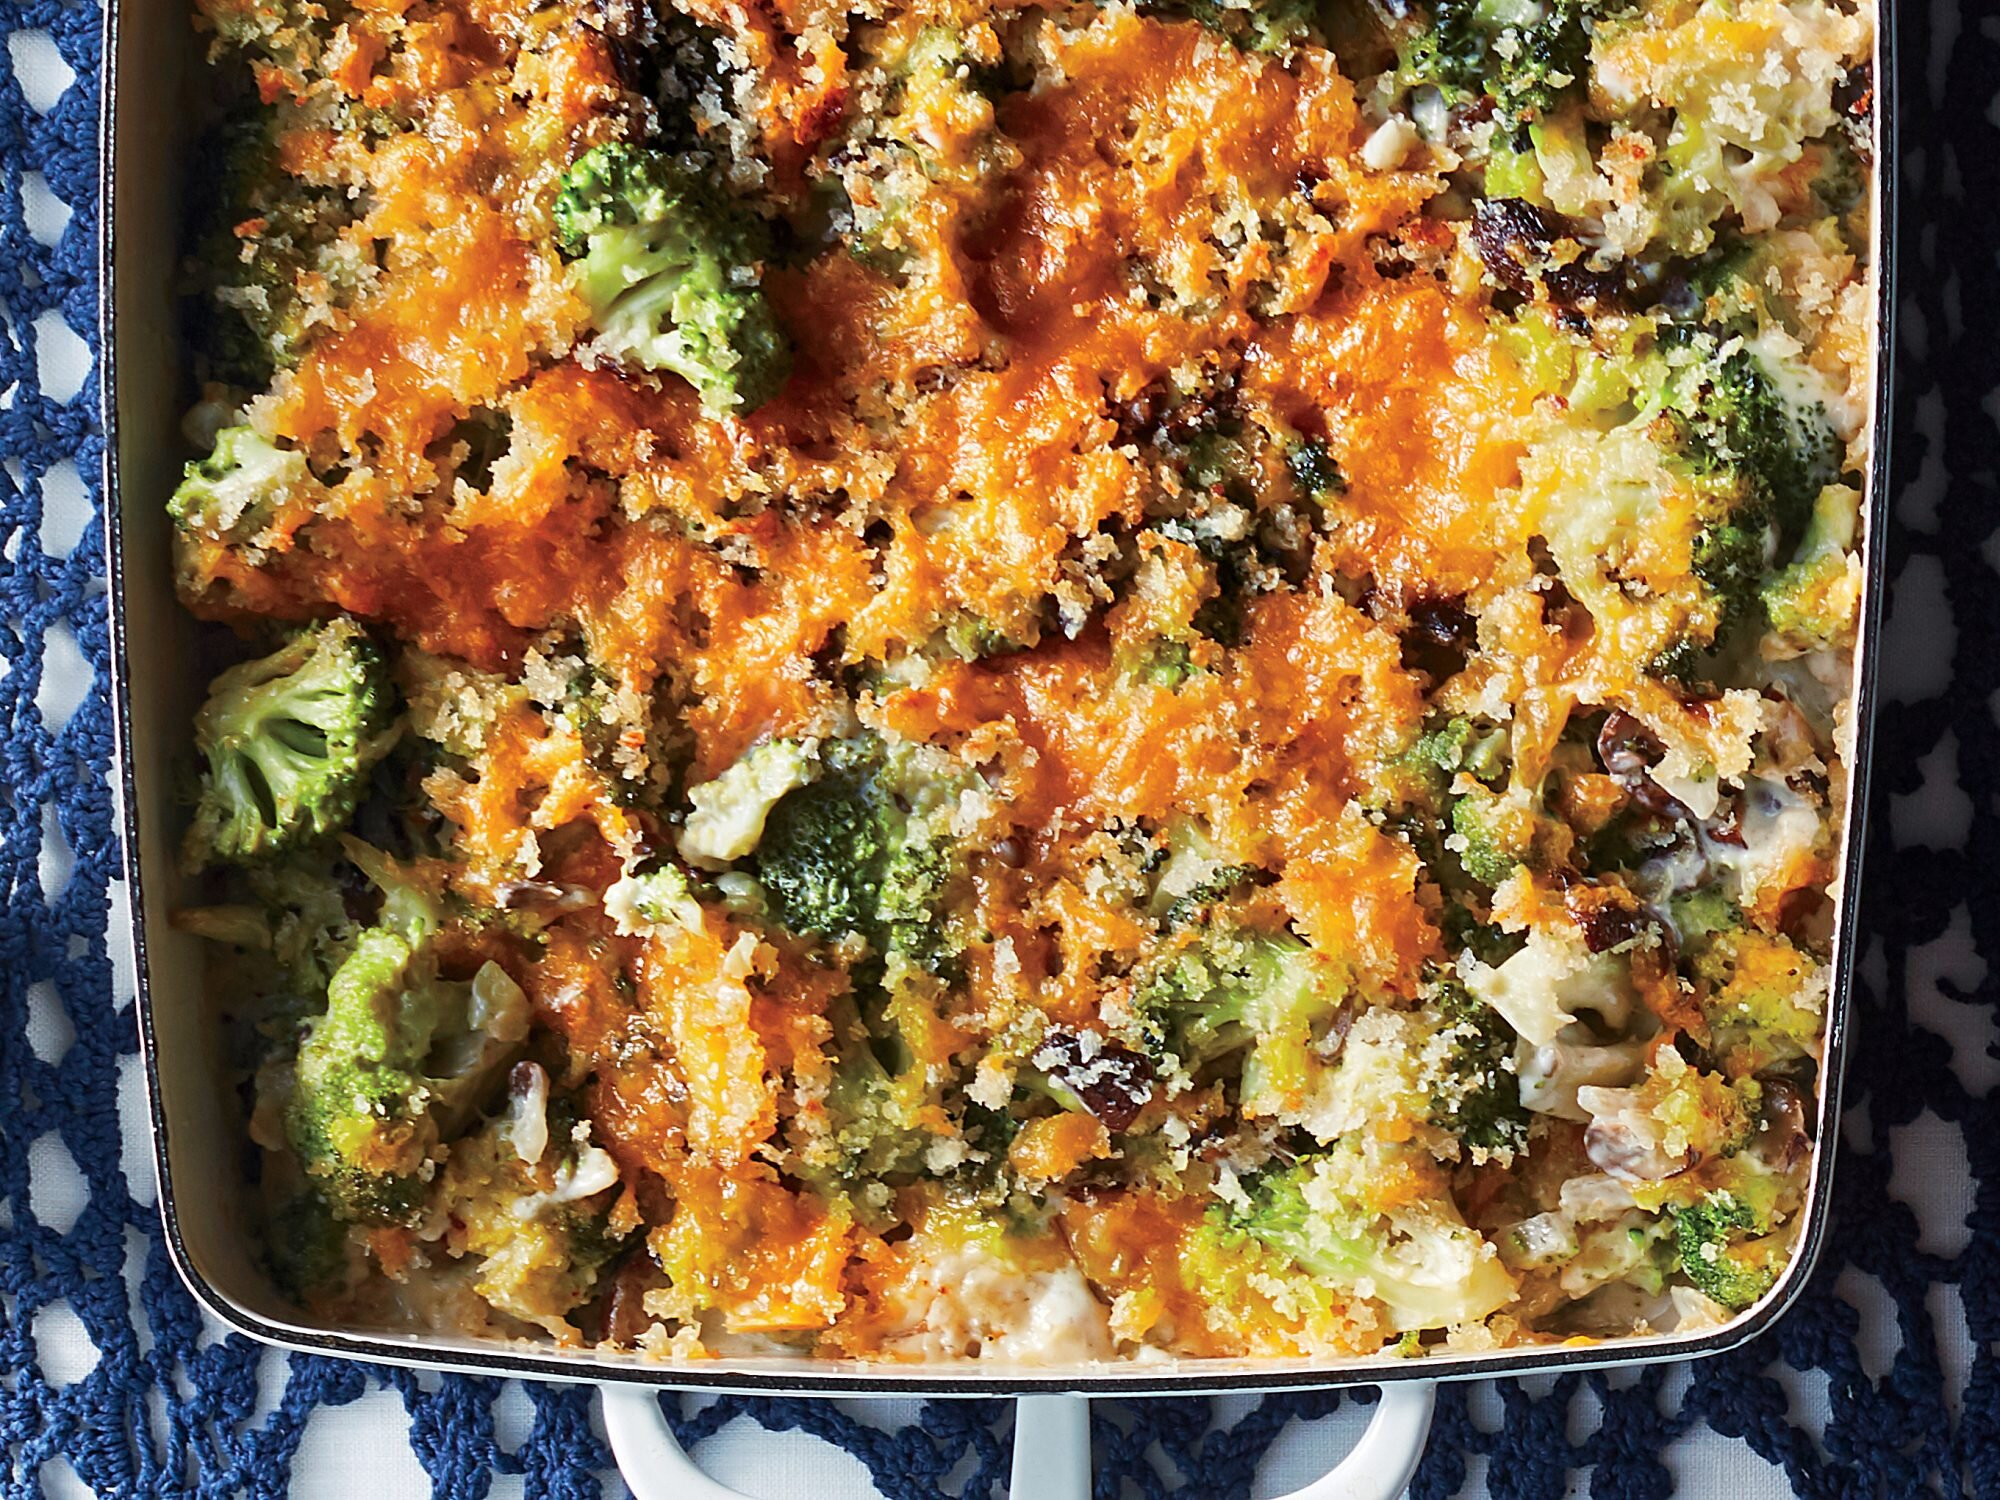 Cozy Holiday Casseroles Myrecipes